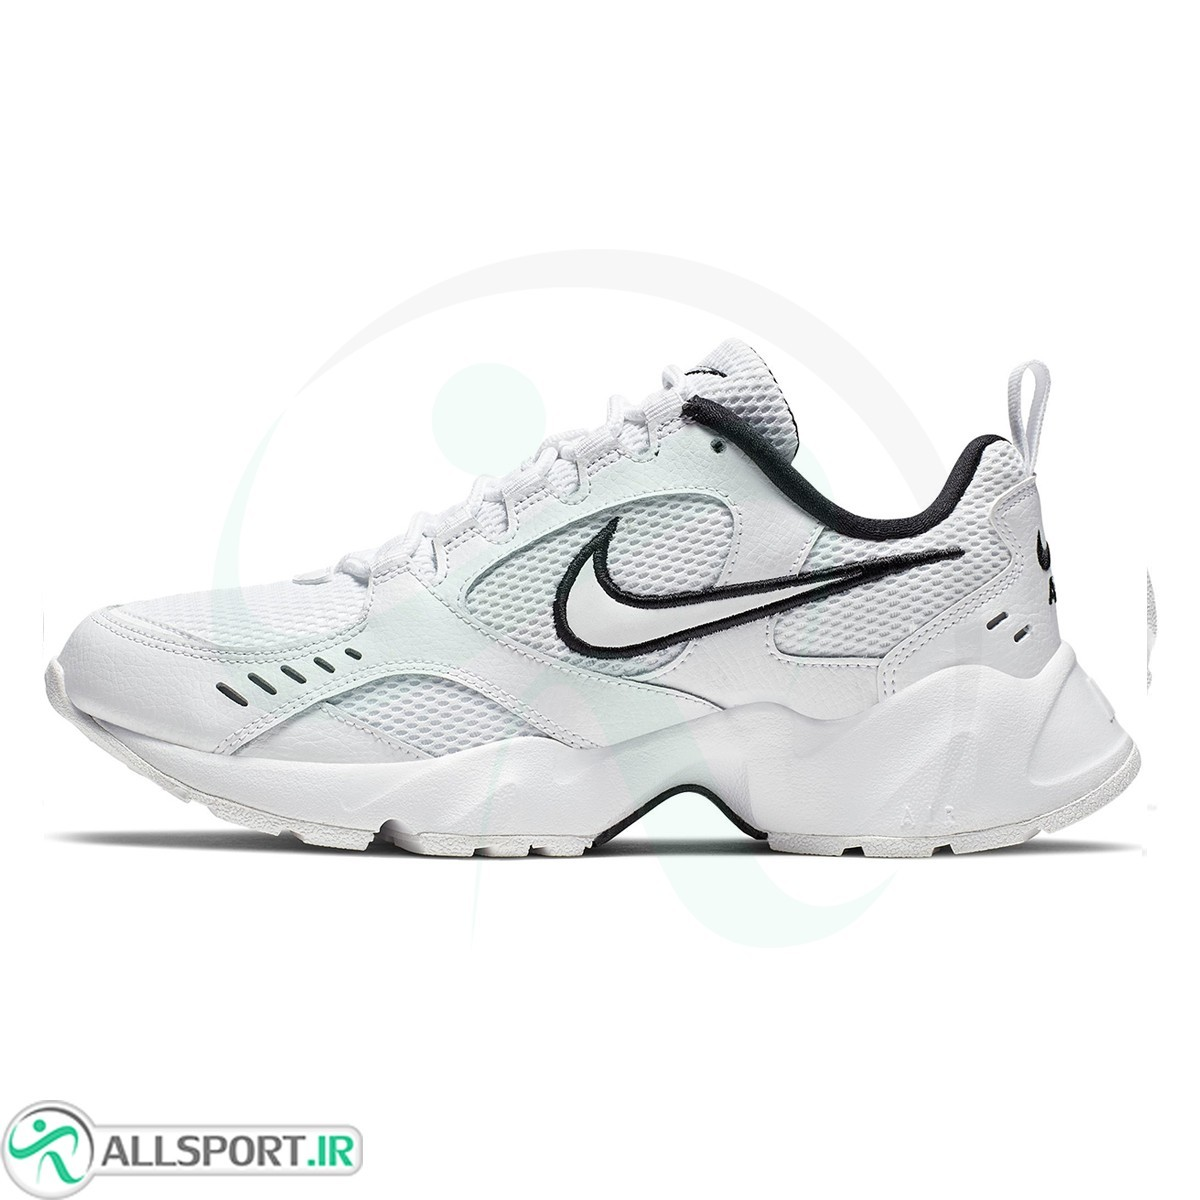 کتانی رانینگ زنانه نایک Nike Air Height CI0603